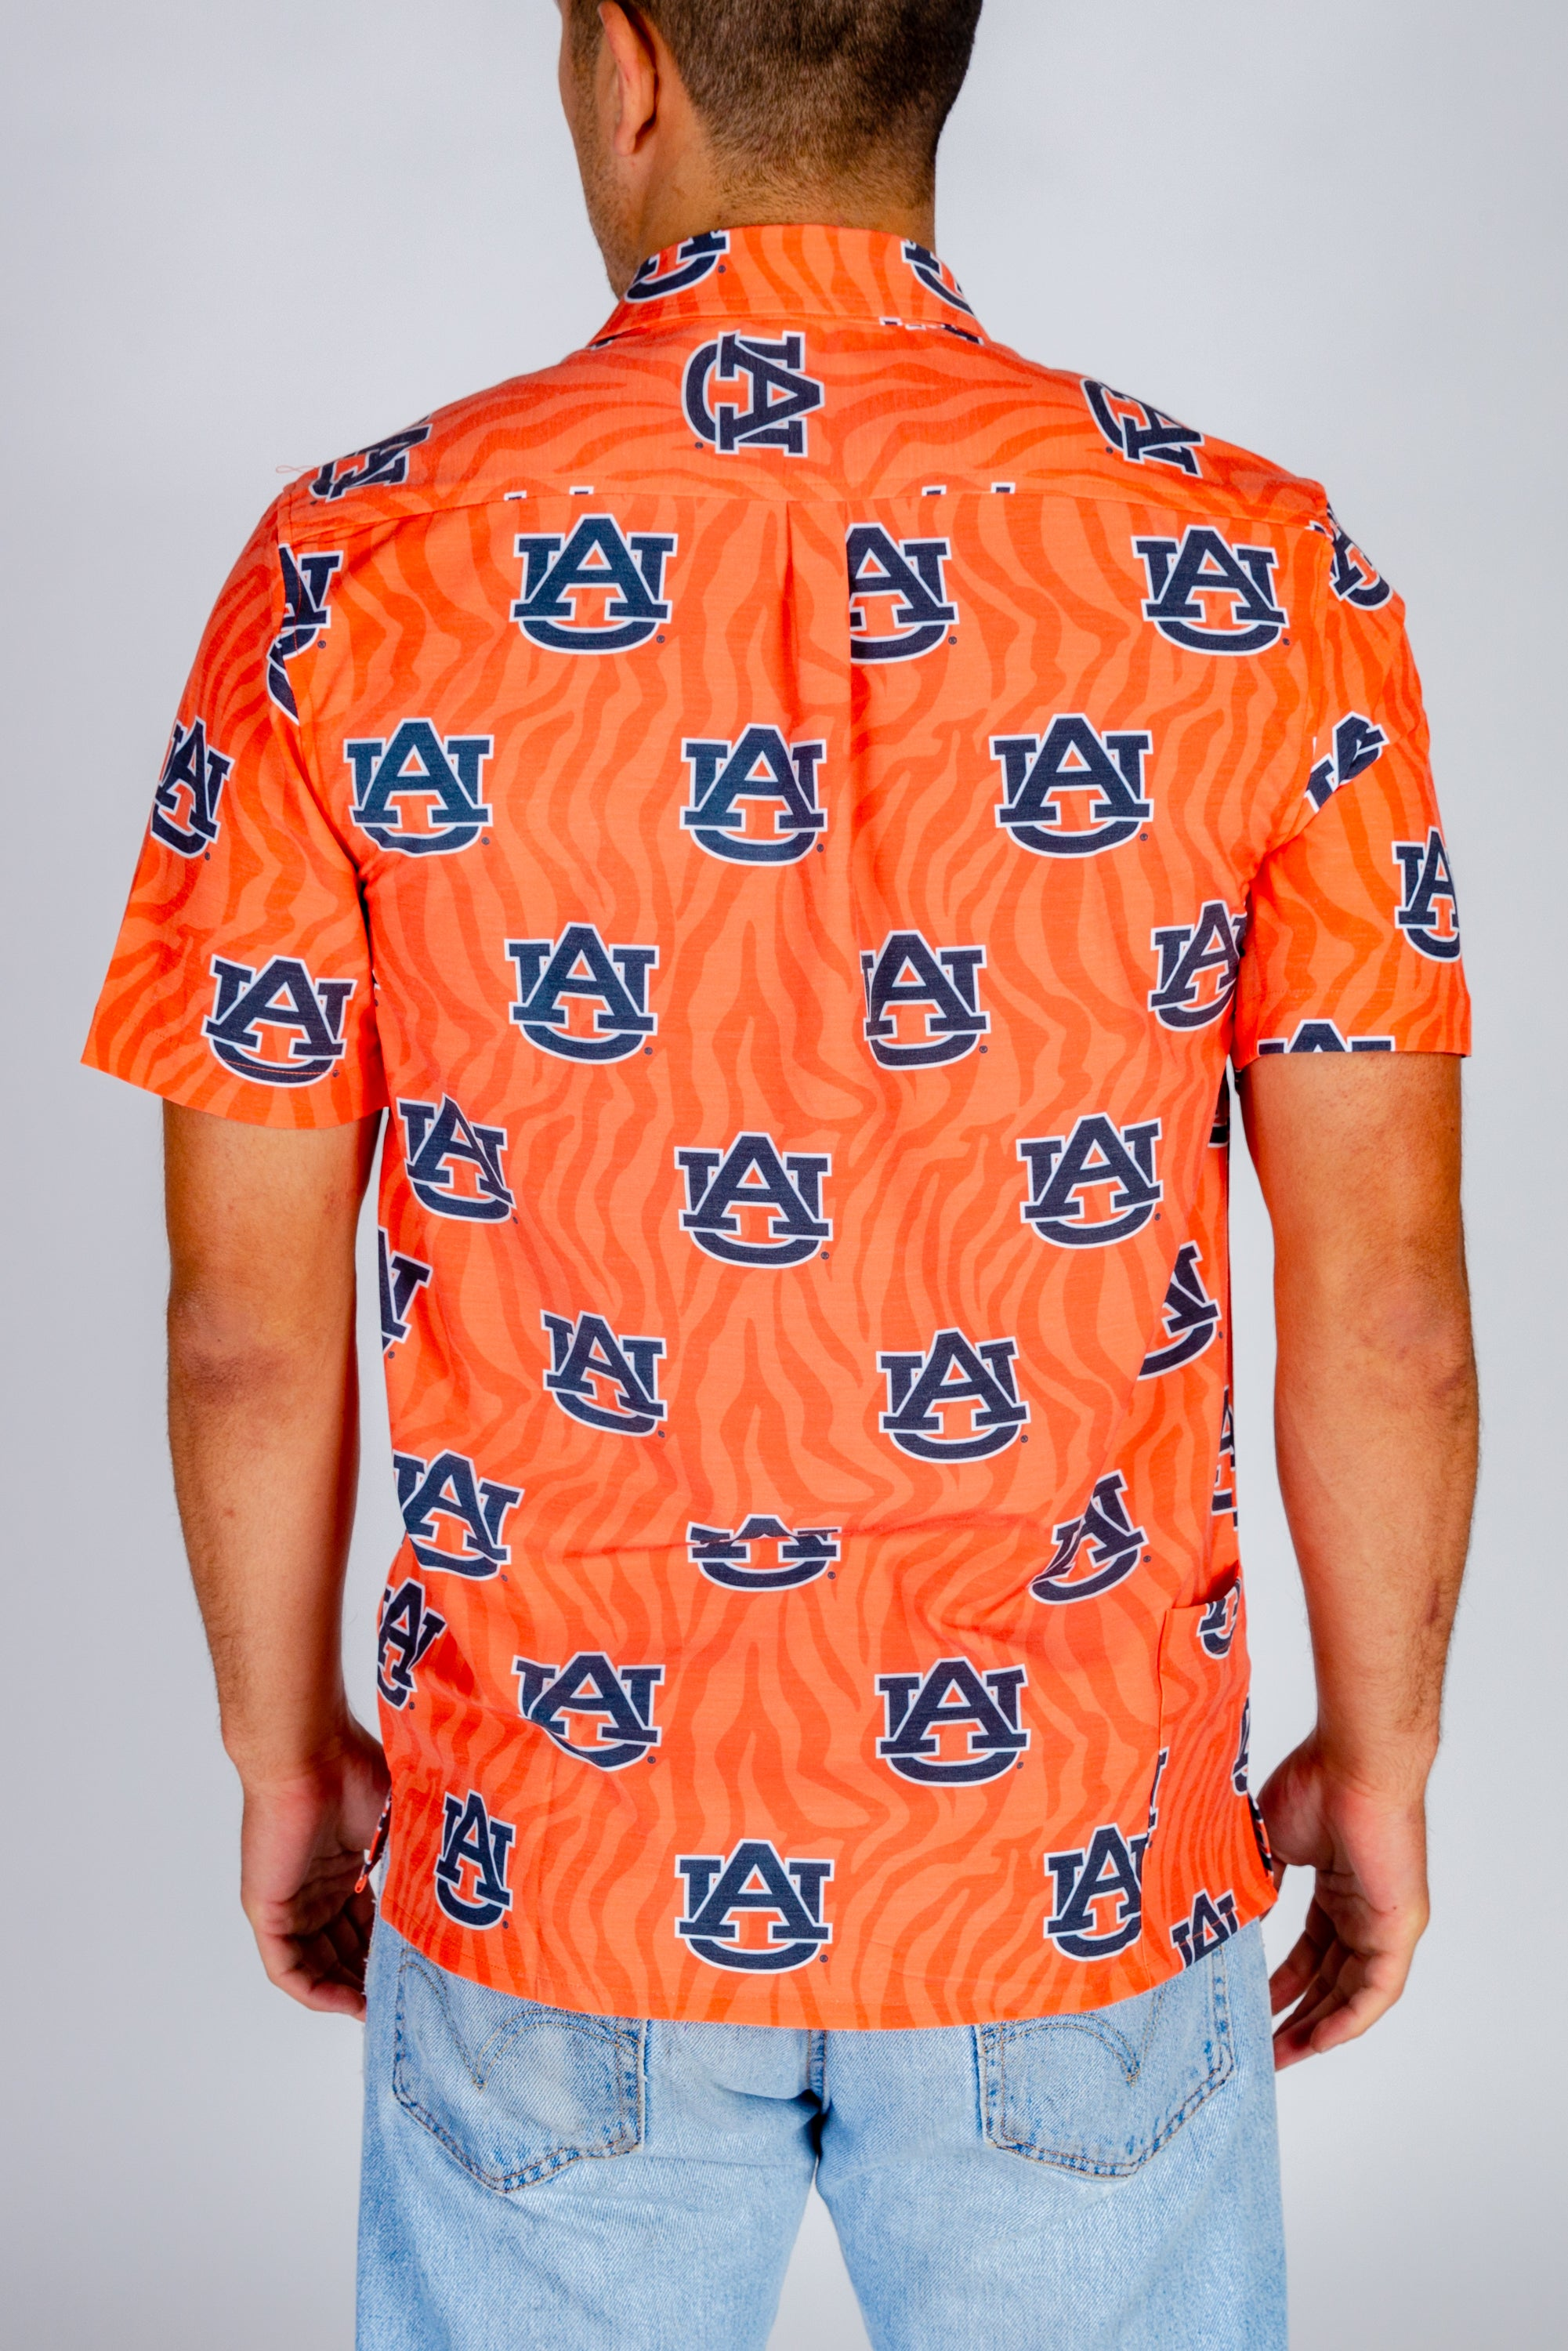 Auburn Game Day Shirt